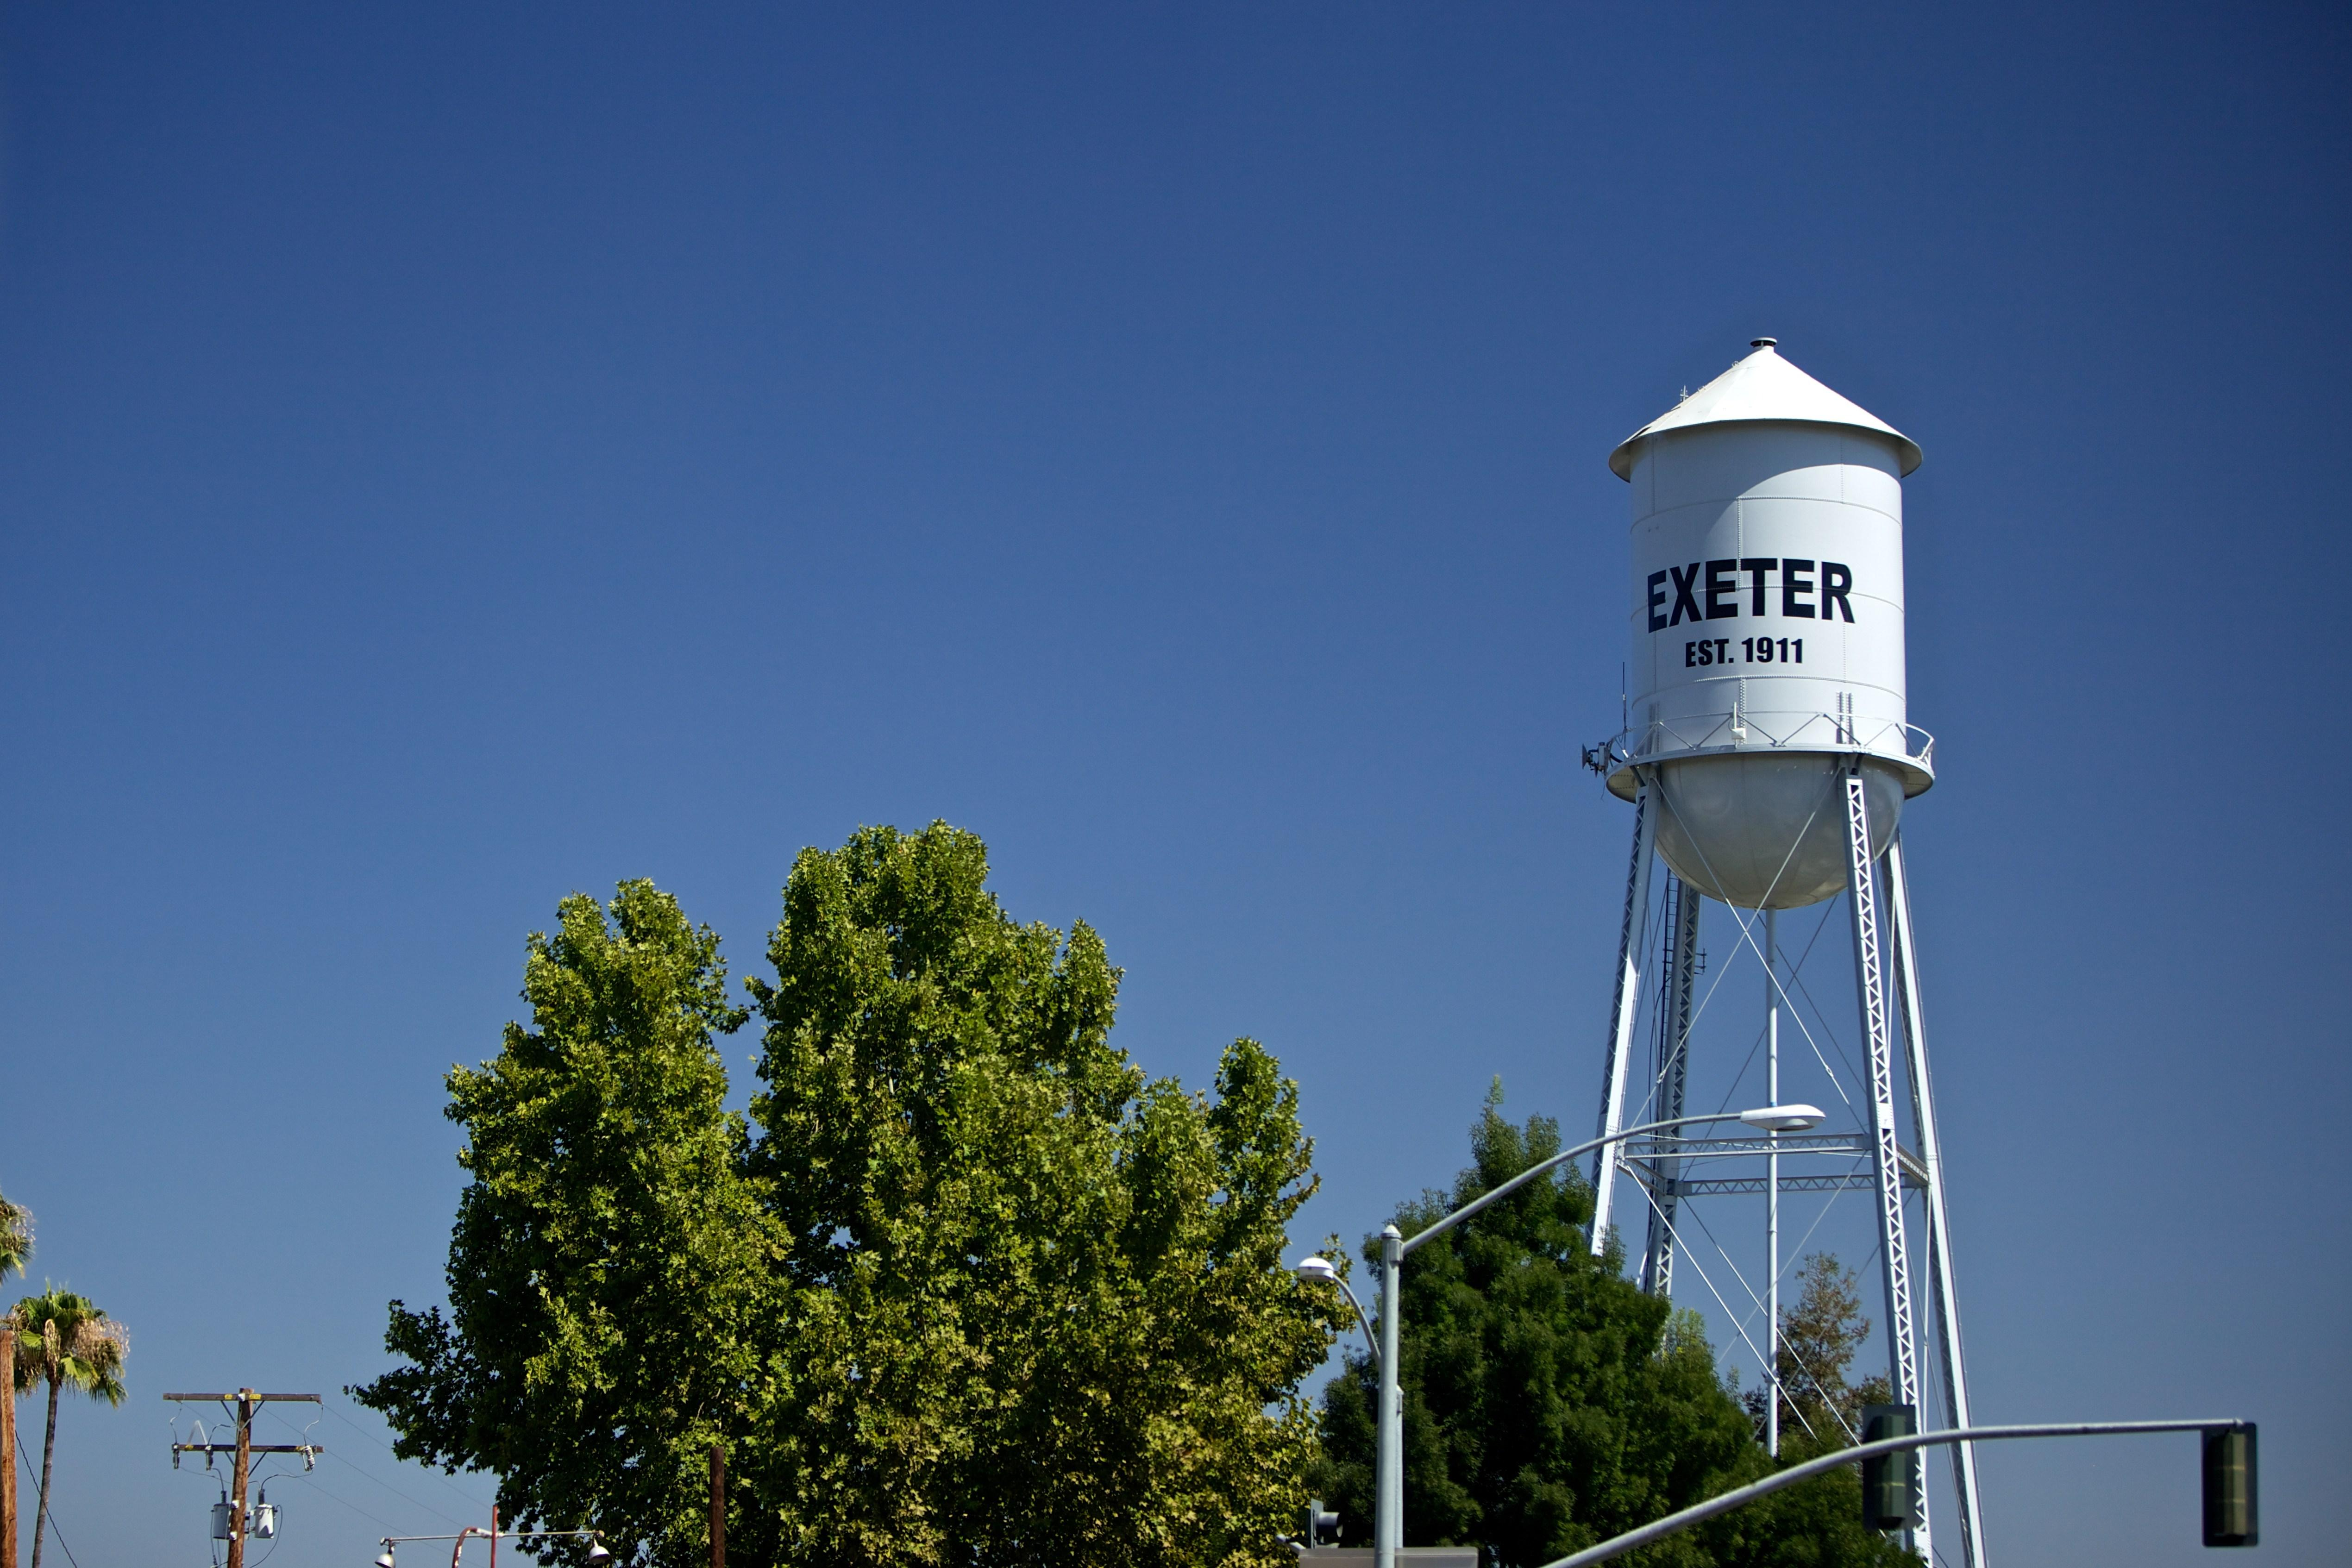 exeter water tower